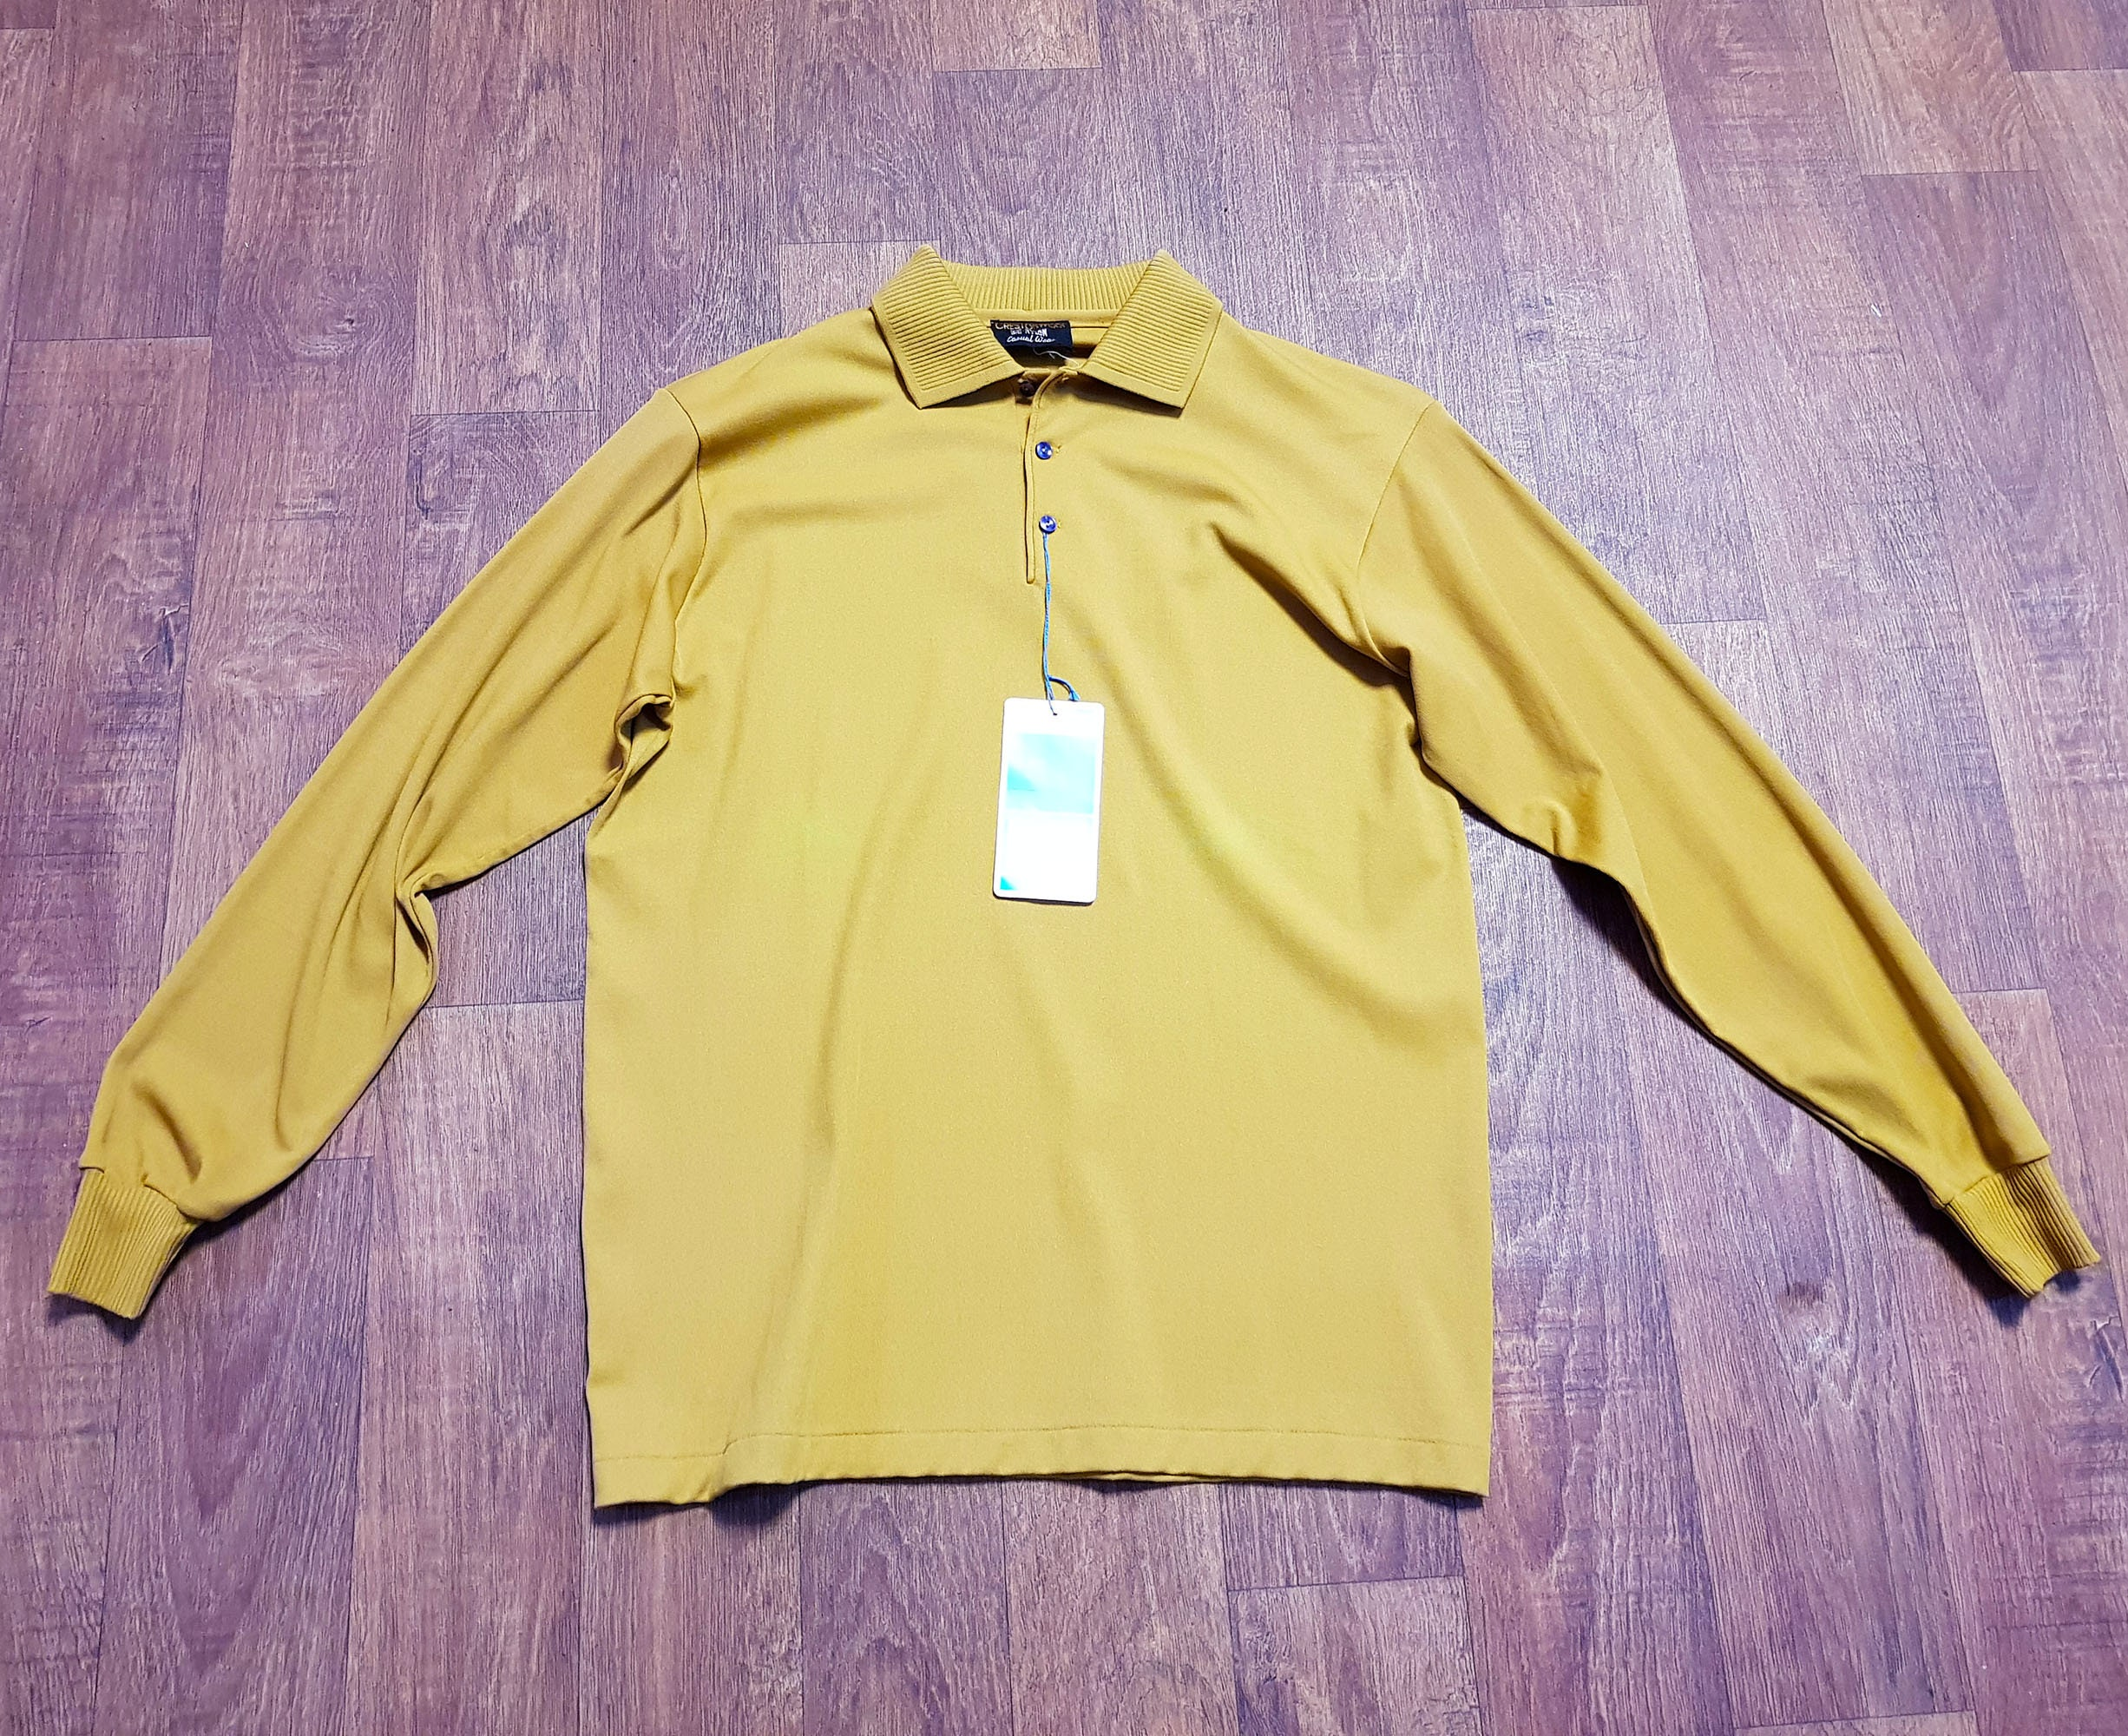 1970s Men's Shirt Styles – Vintage 70s Shirts for Guys Mens Clothing  1970S Vintage Mustard Long Sleeved Polo Uk Size Medium Clothing, Polo, Top, Fashion $40.86 AT vintagedancer.com